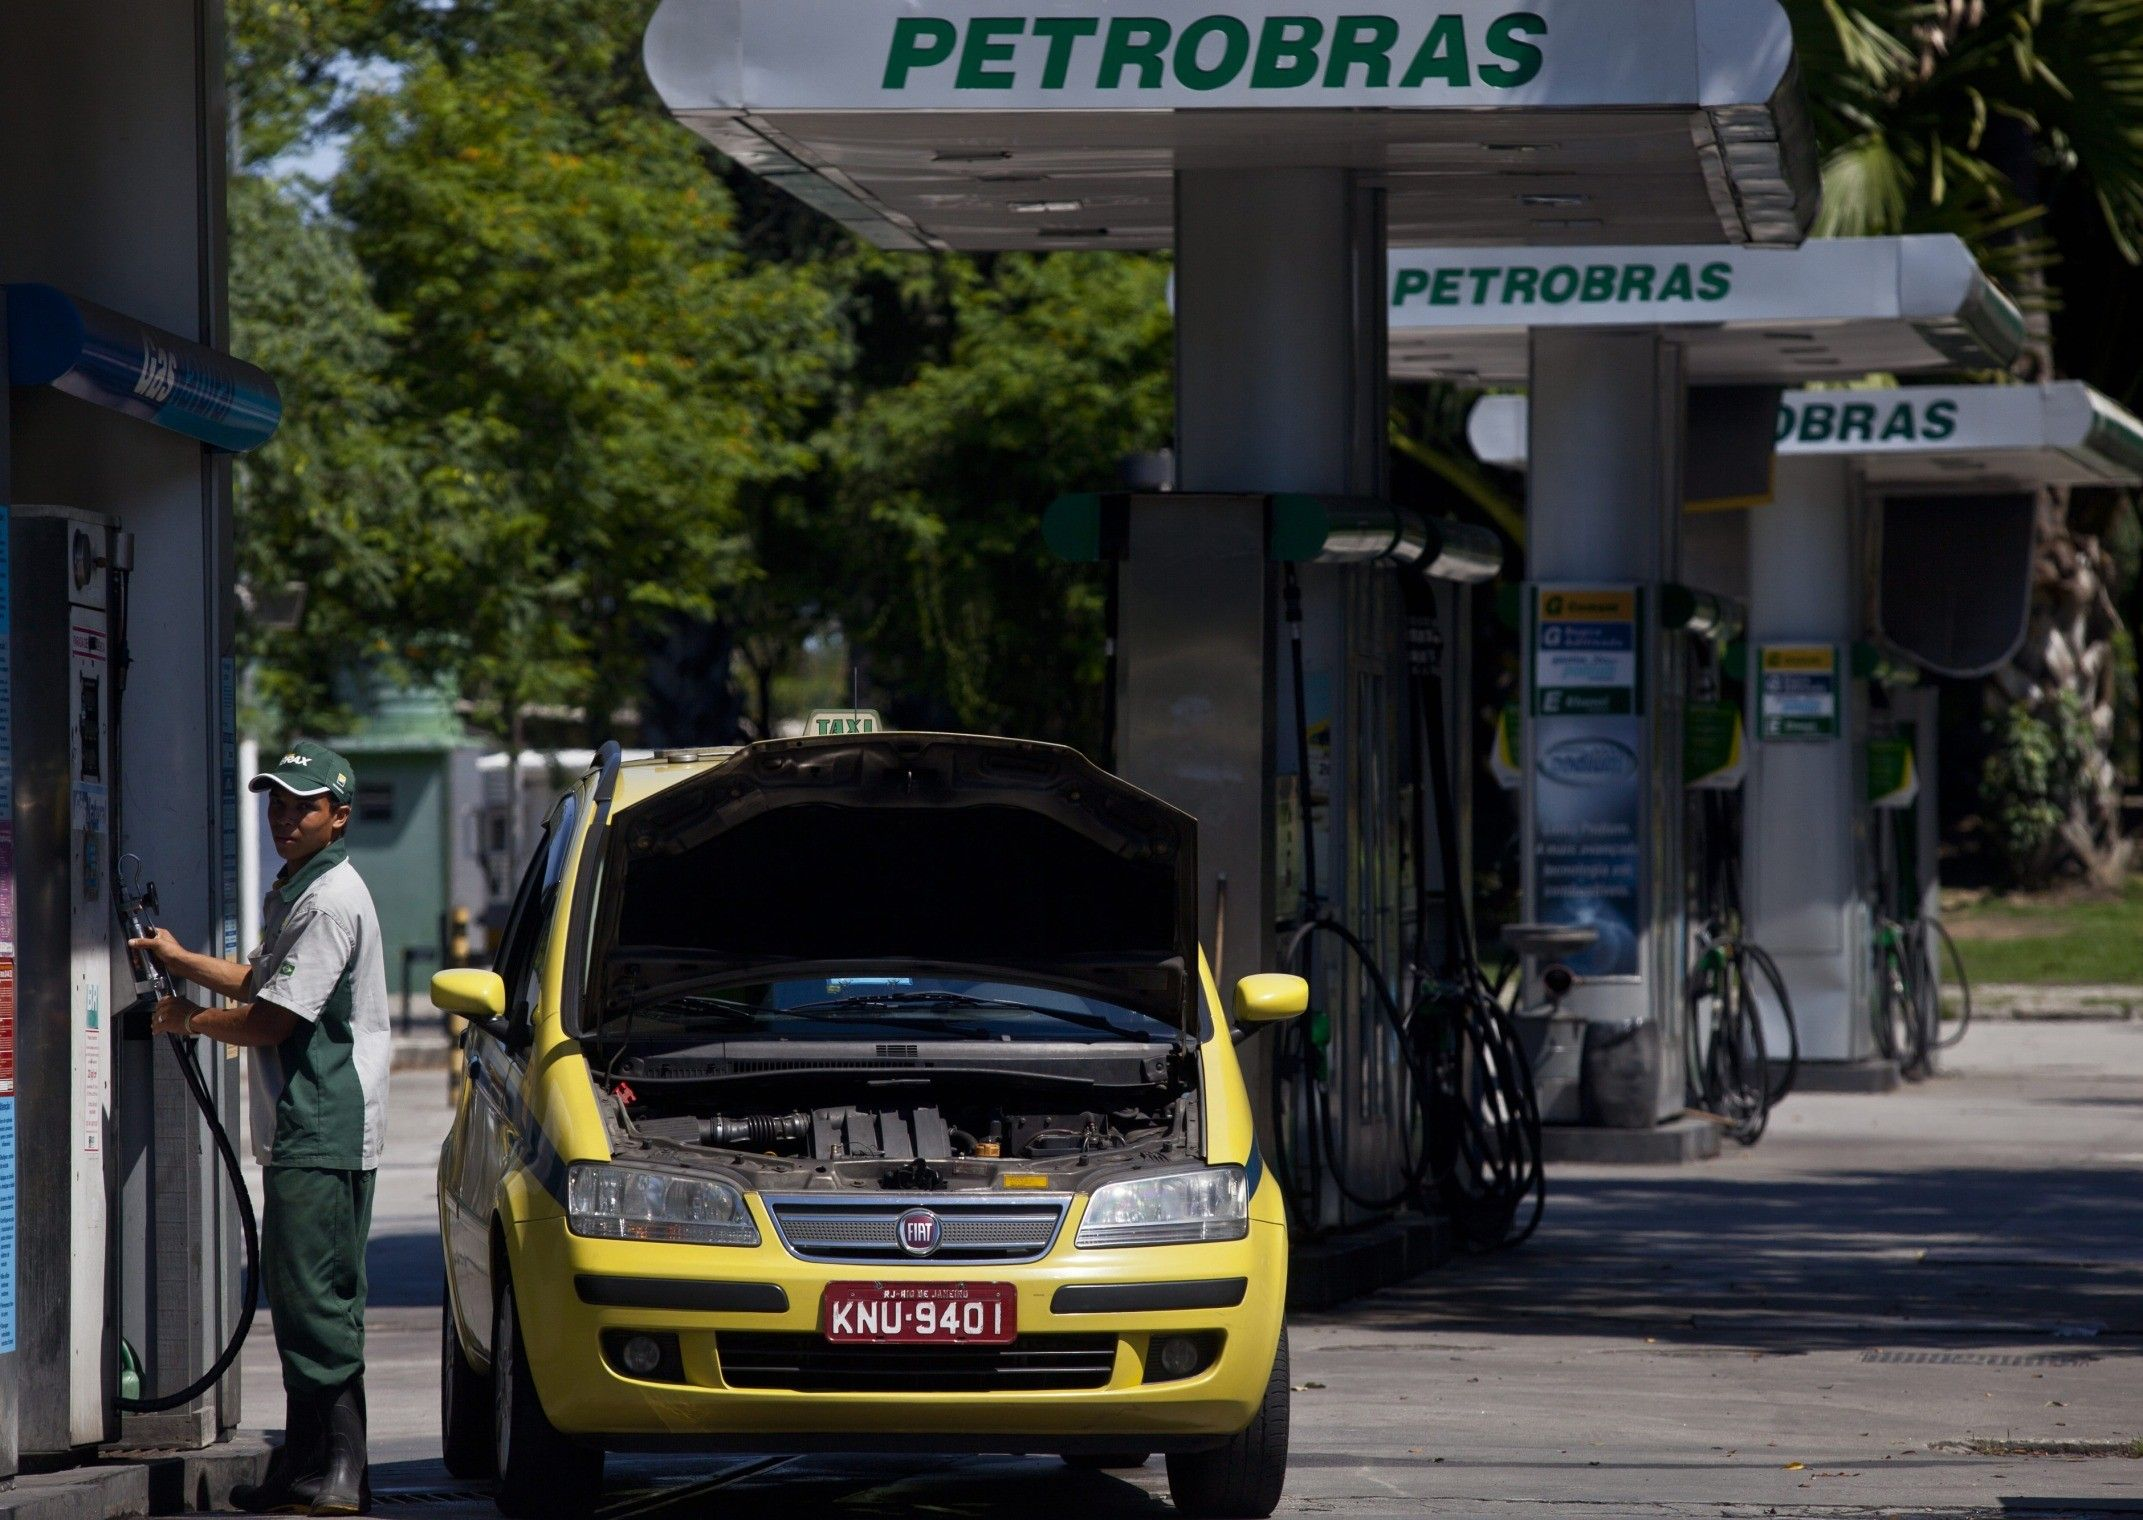 Brazil to Pay Petrobras $9 Billion in Oil Contract Settlement